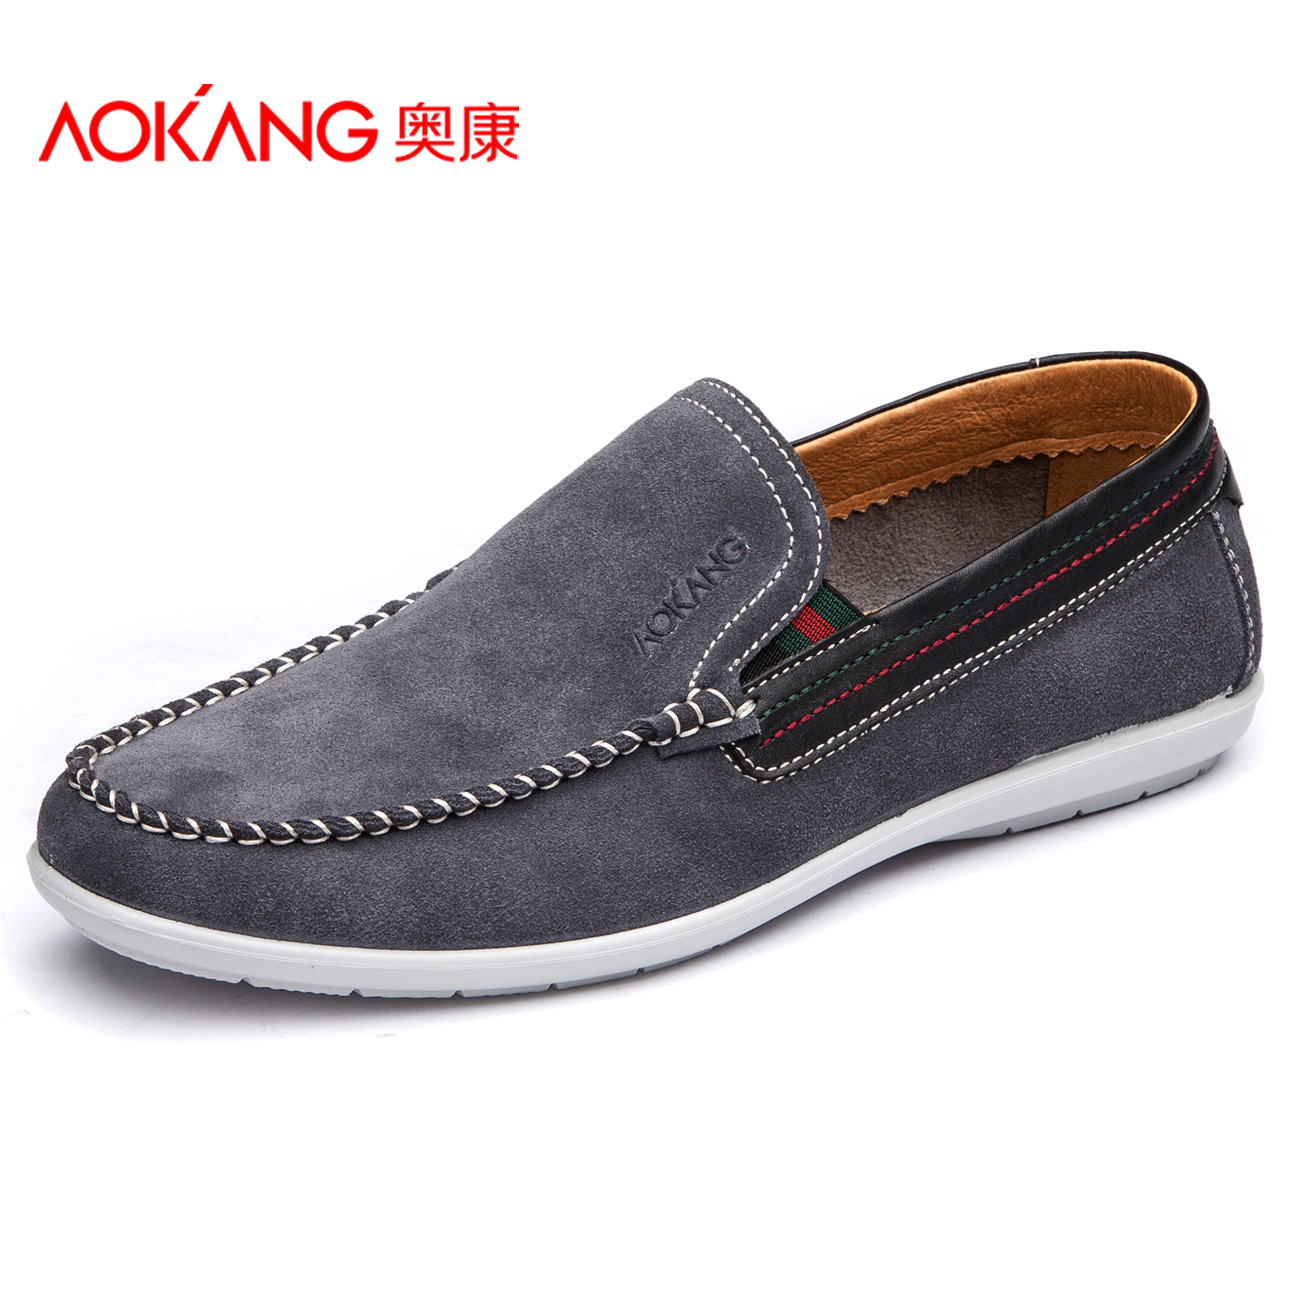 AOKANG men's 2015 new men's head set foot leather suede leather shoes men's daily leisure comfortable wear(China (Mainland))